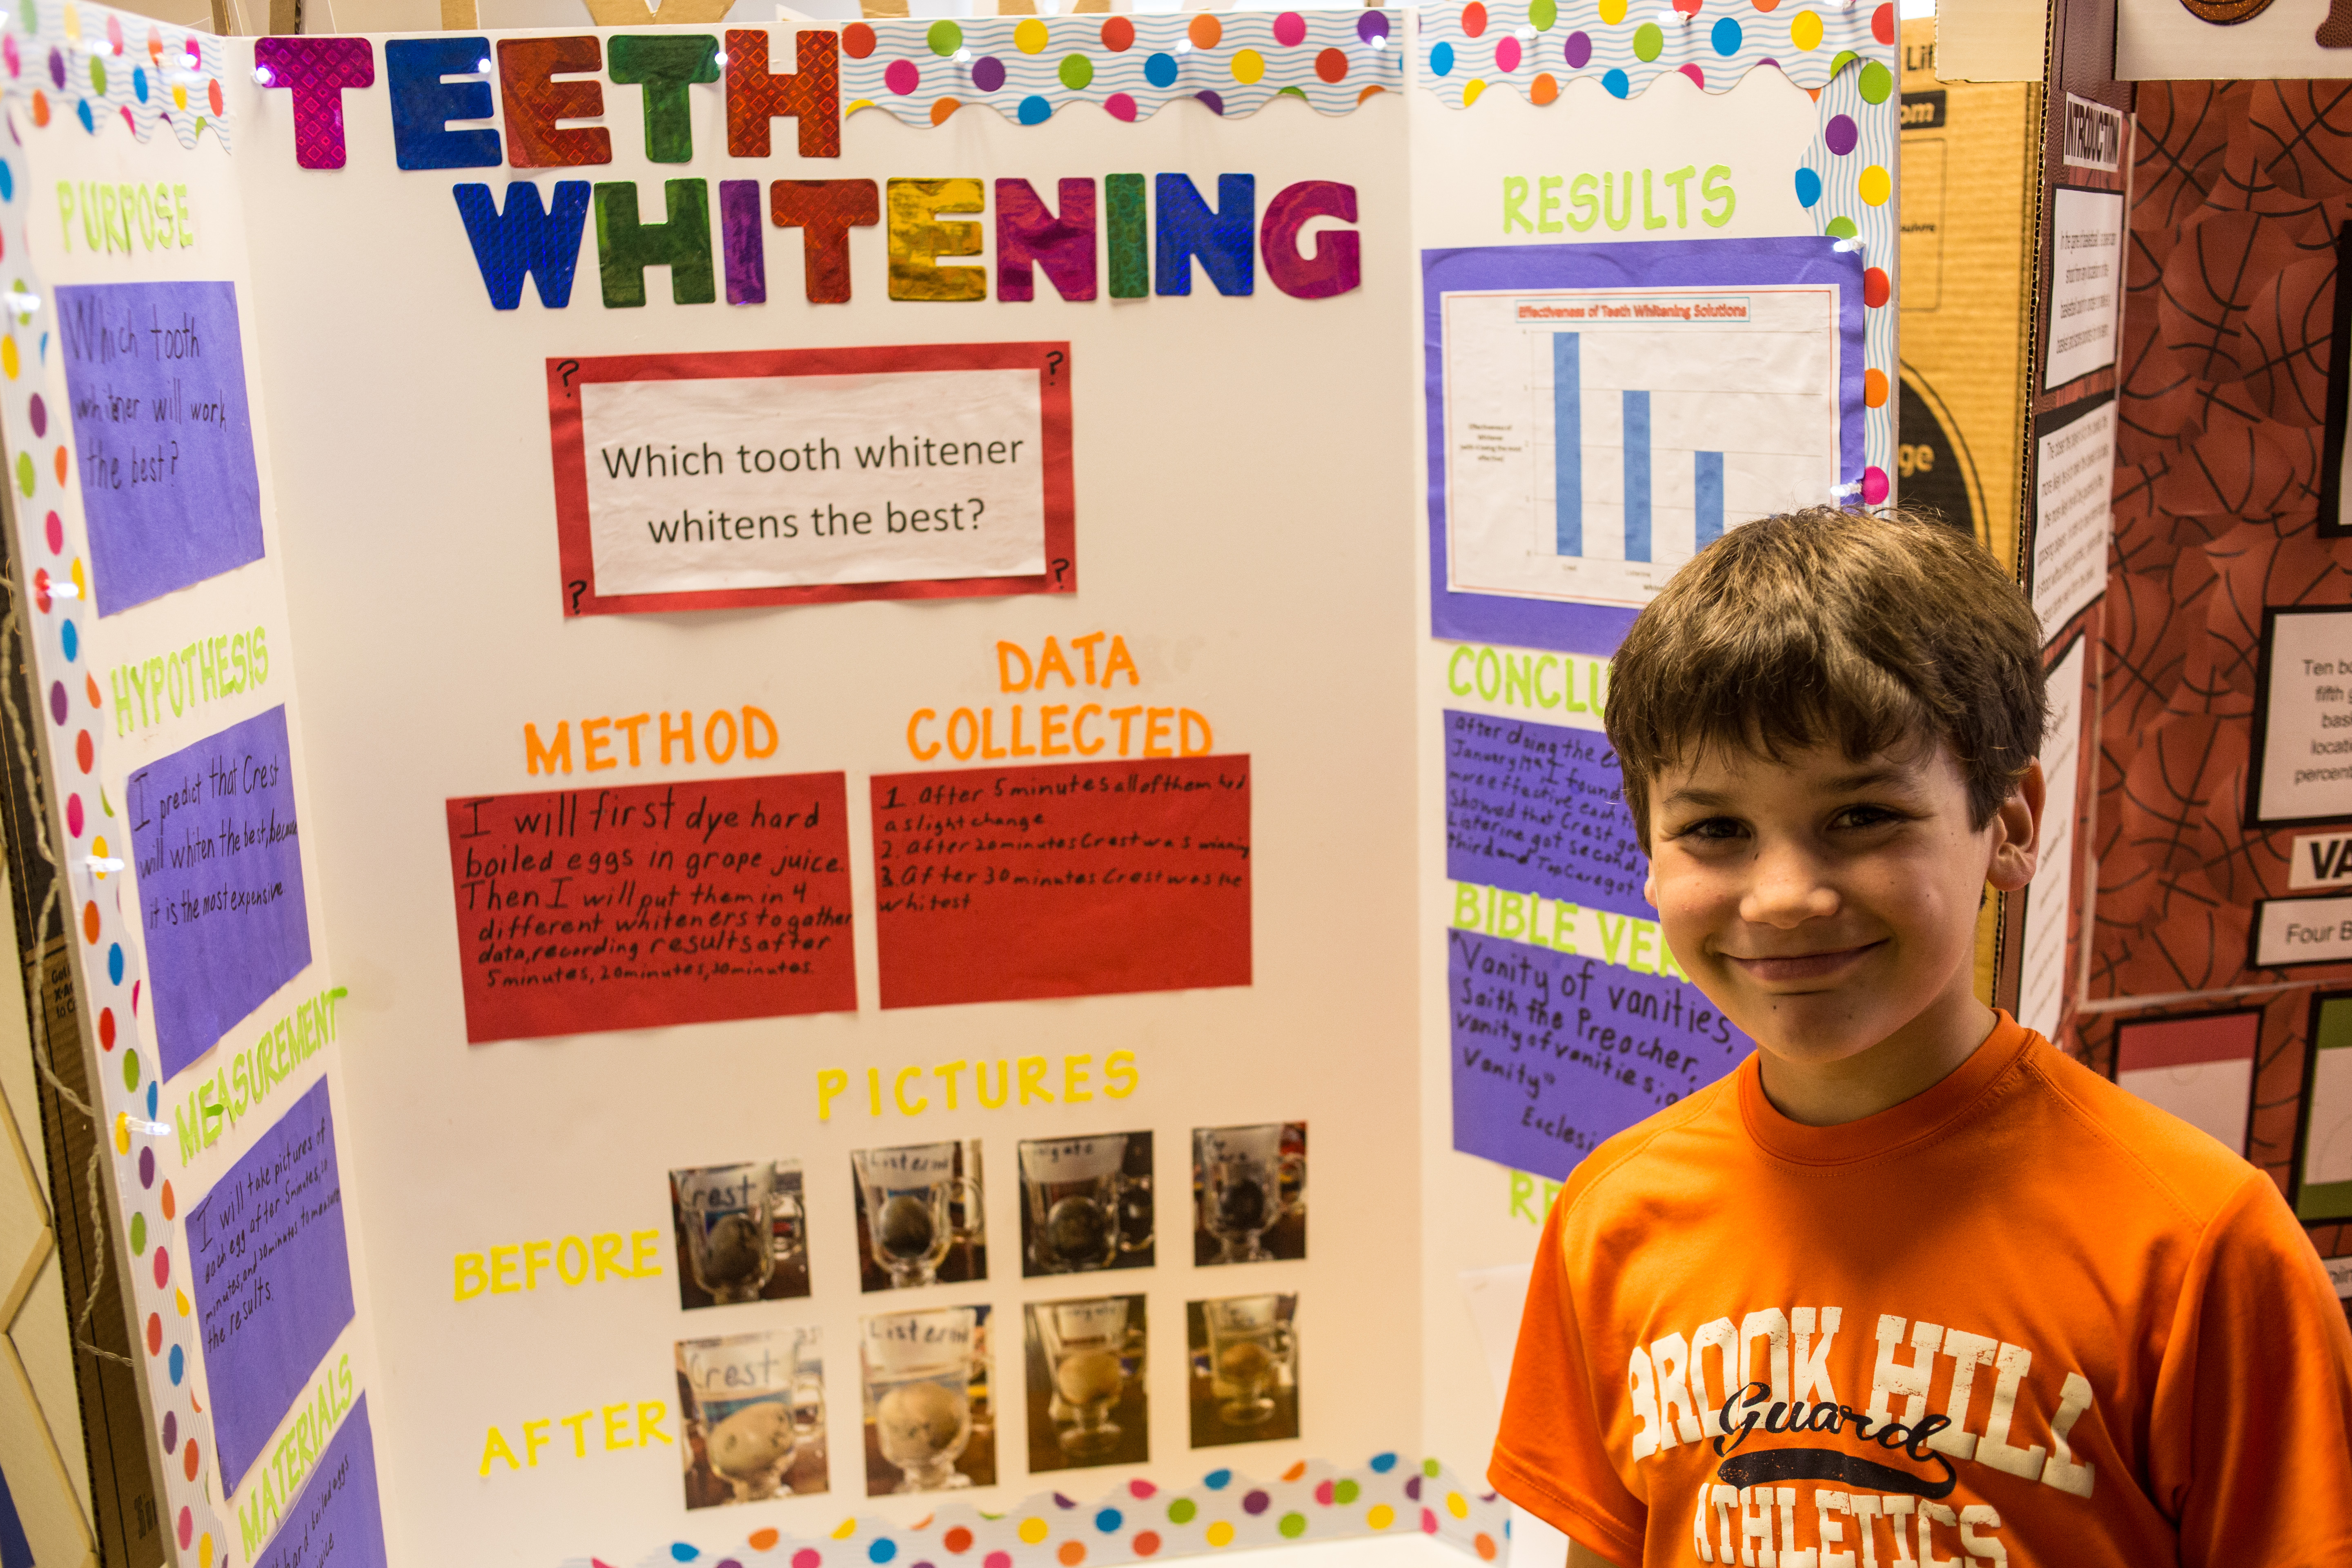 fifth grade science projects Find and save ideas about 5th grade science experiments on pinterest | see more ideas about 4th grade science experiments, 5th grade science projects and bottle ecosystem.